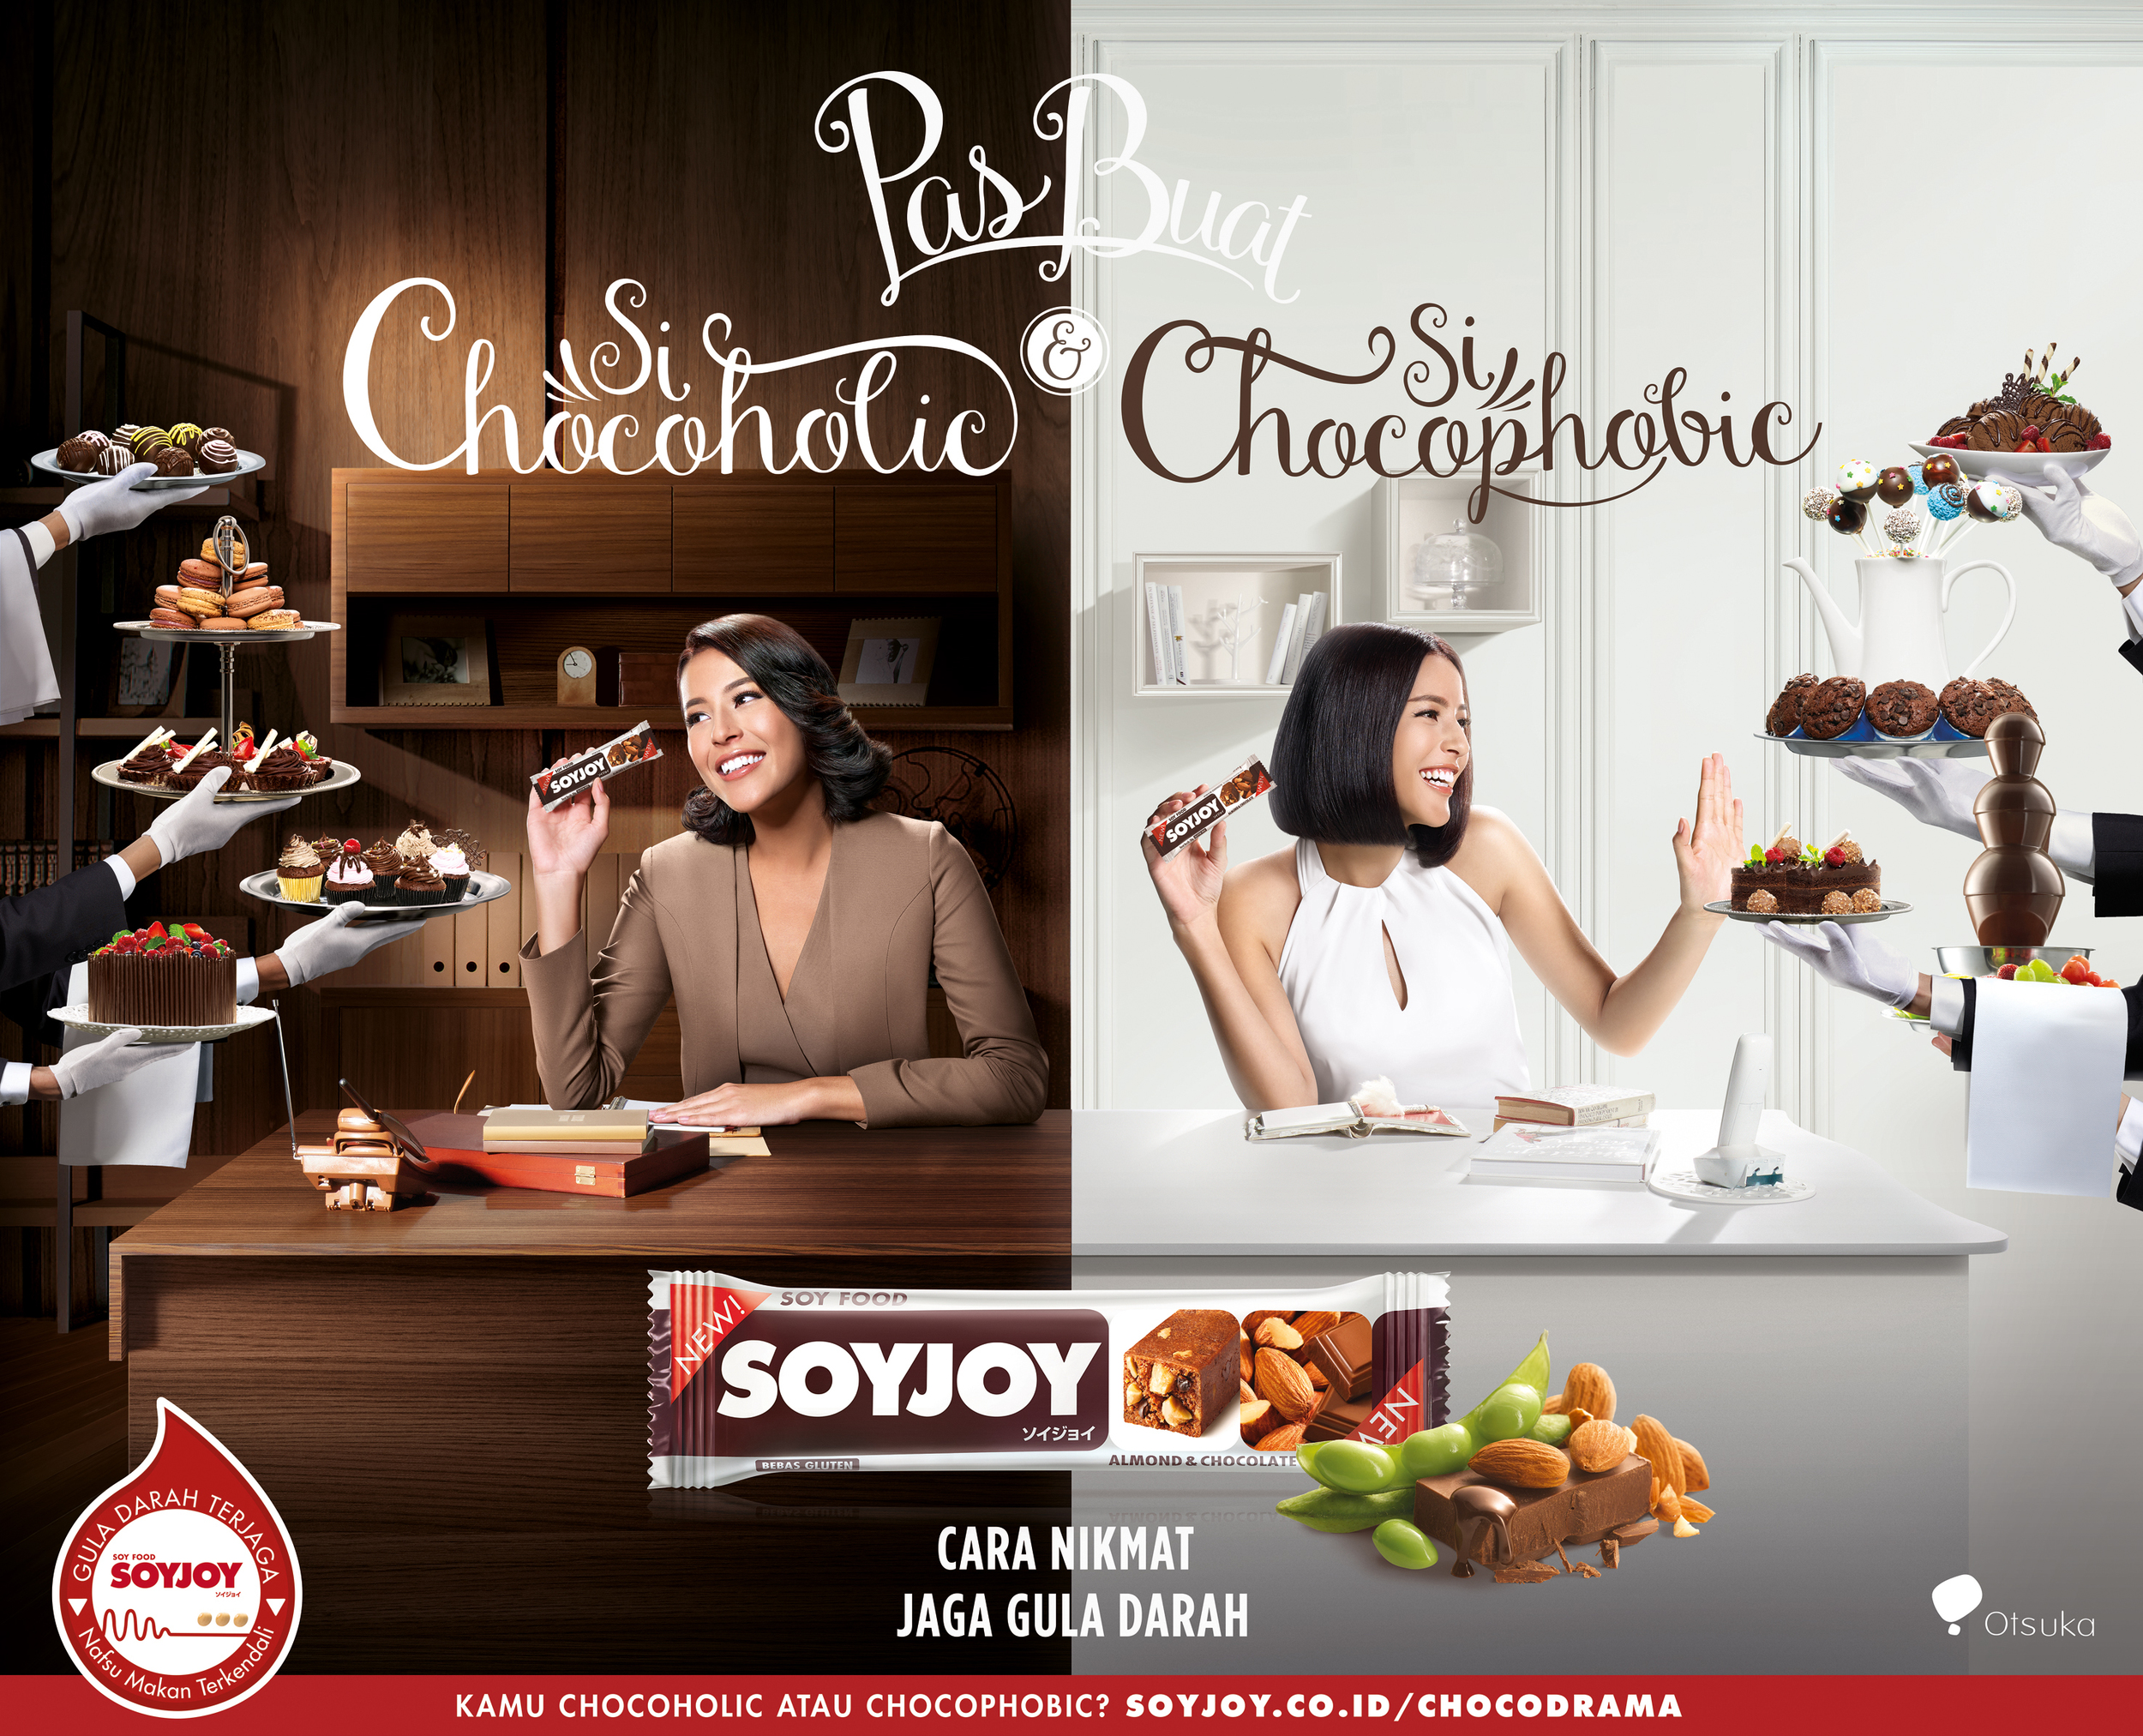 Soyjoy Chocoholic